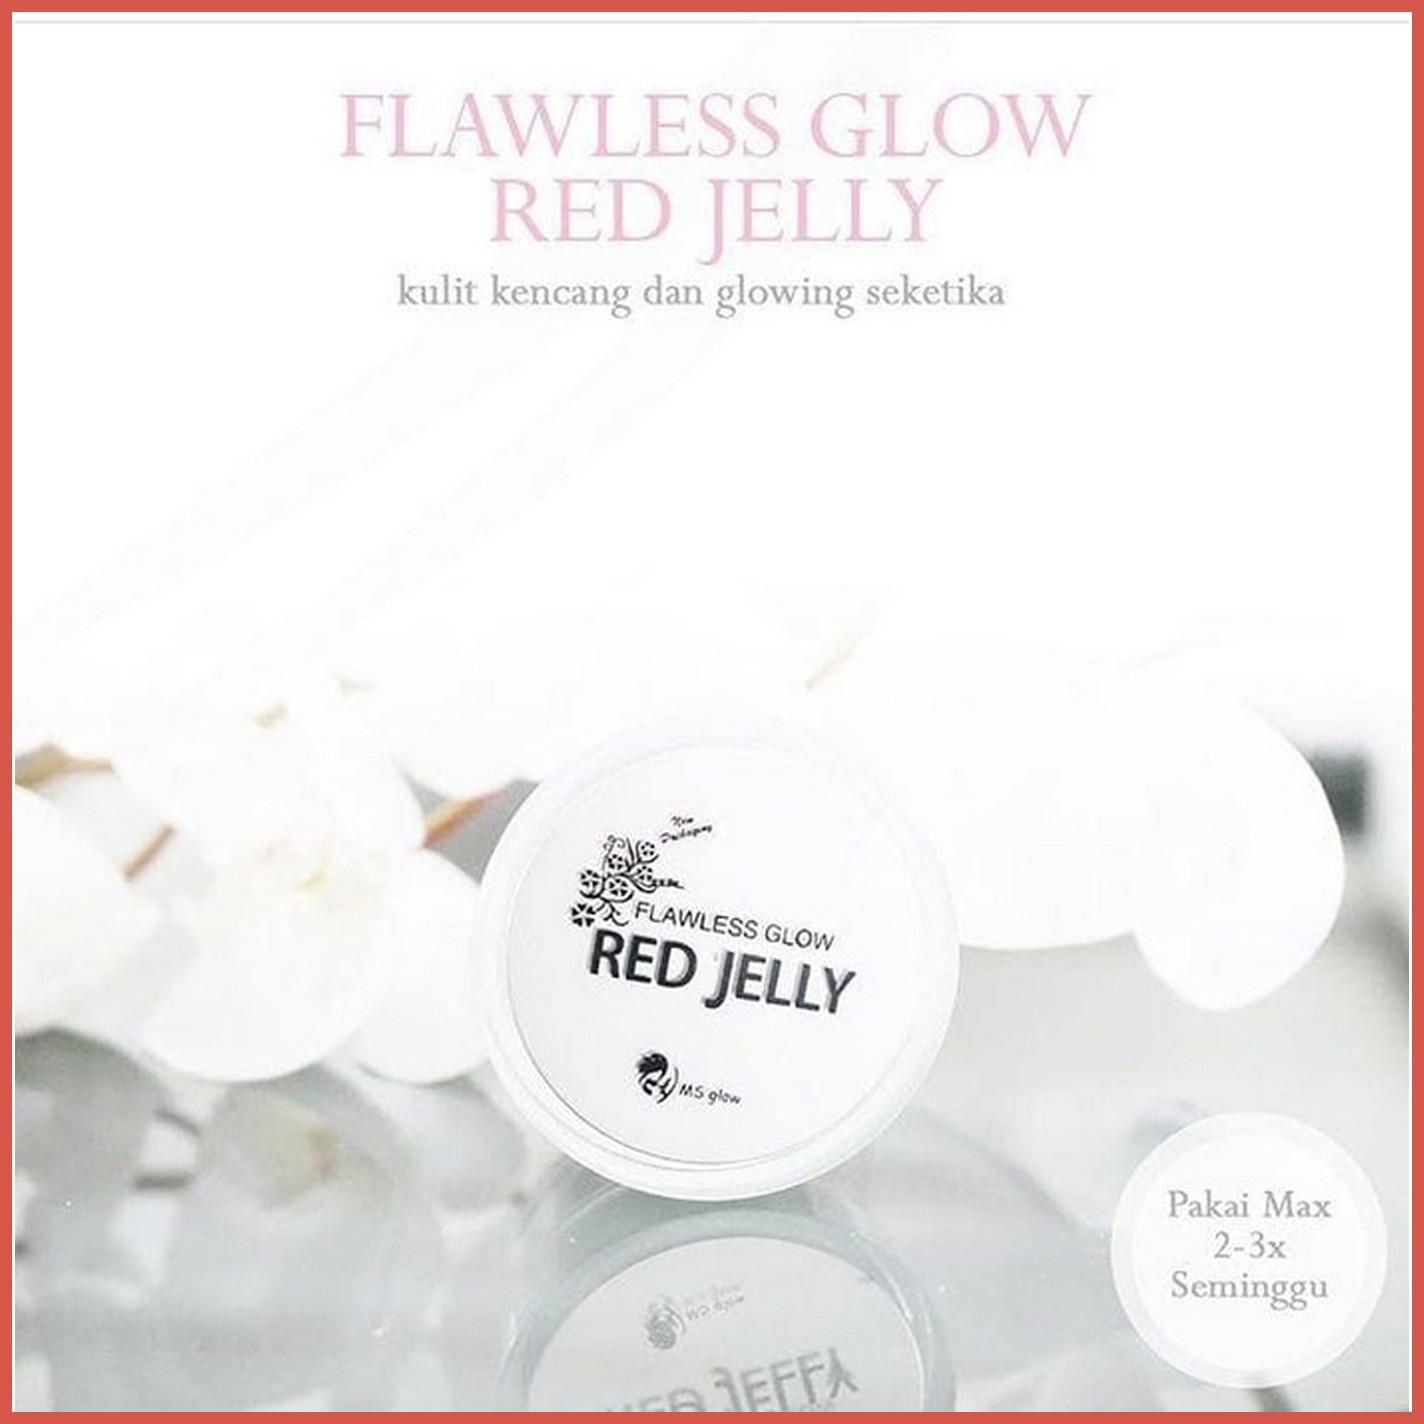 Ms Glow Red Jelly Bpom Flawless By Elevenia